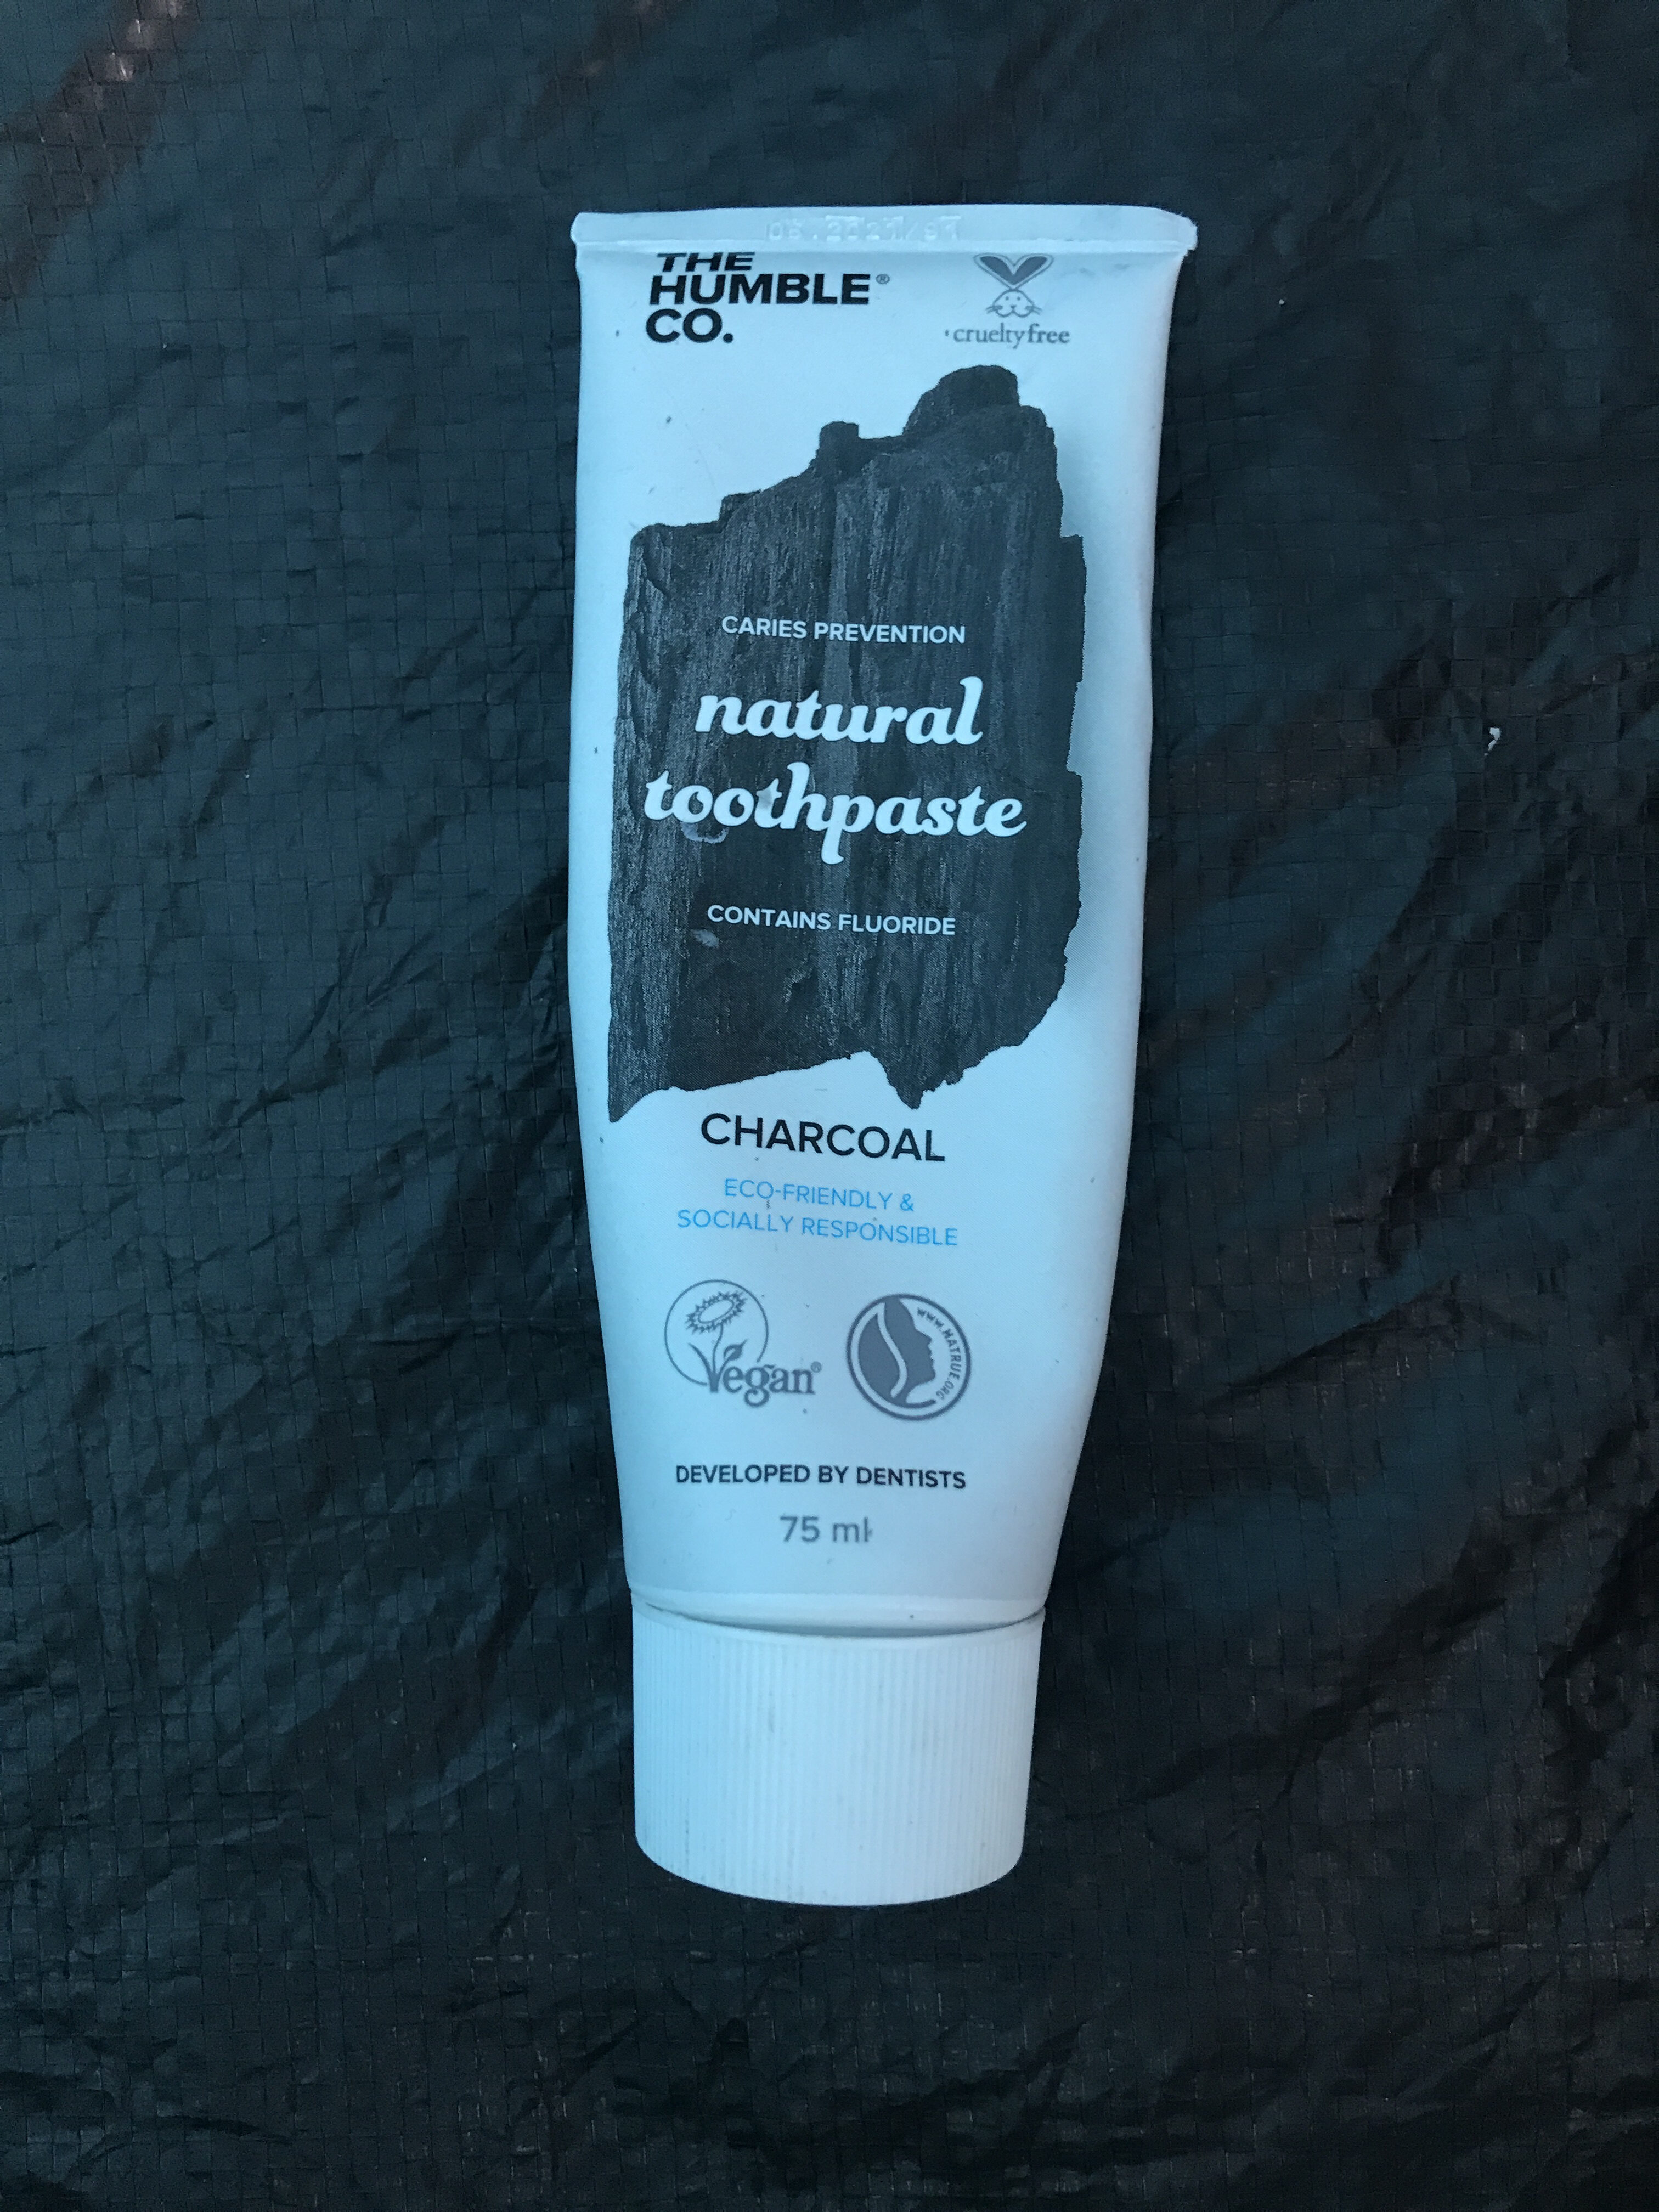 Natural Toothpaste - Product